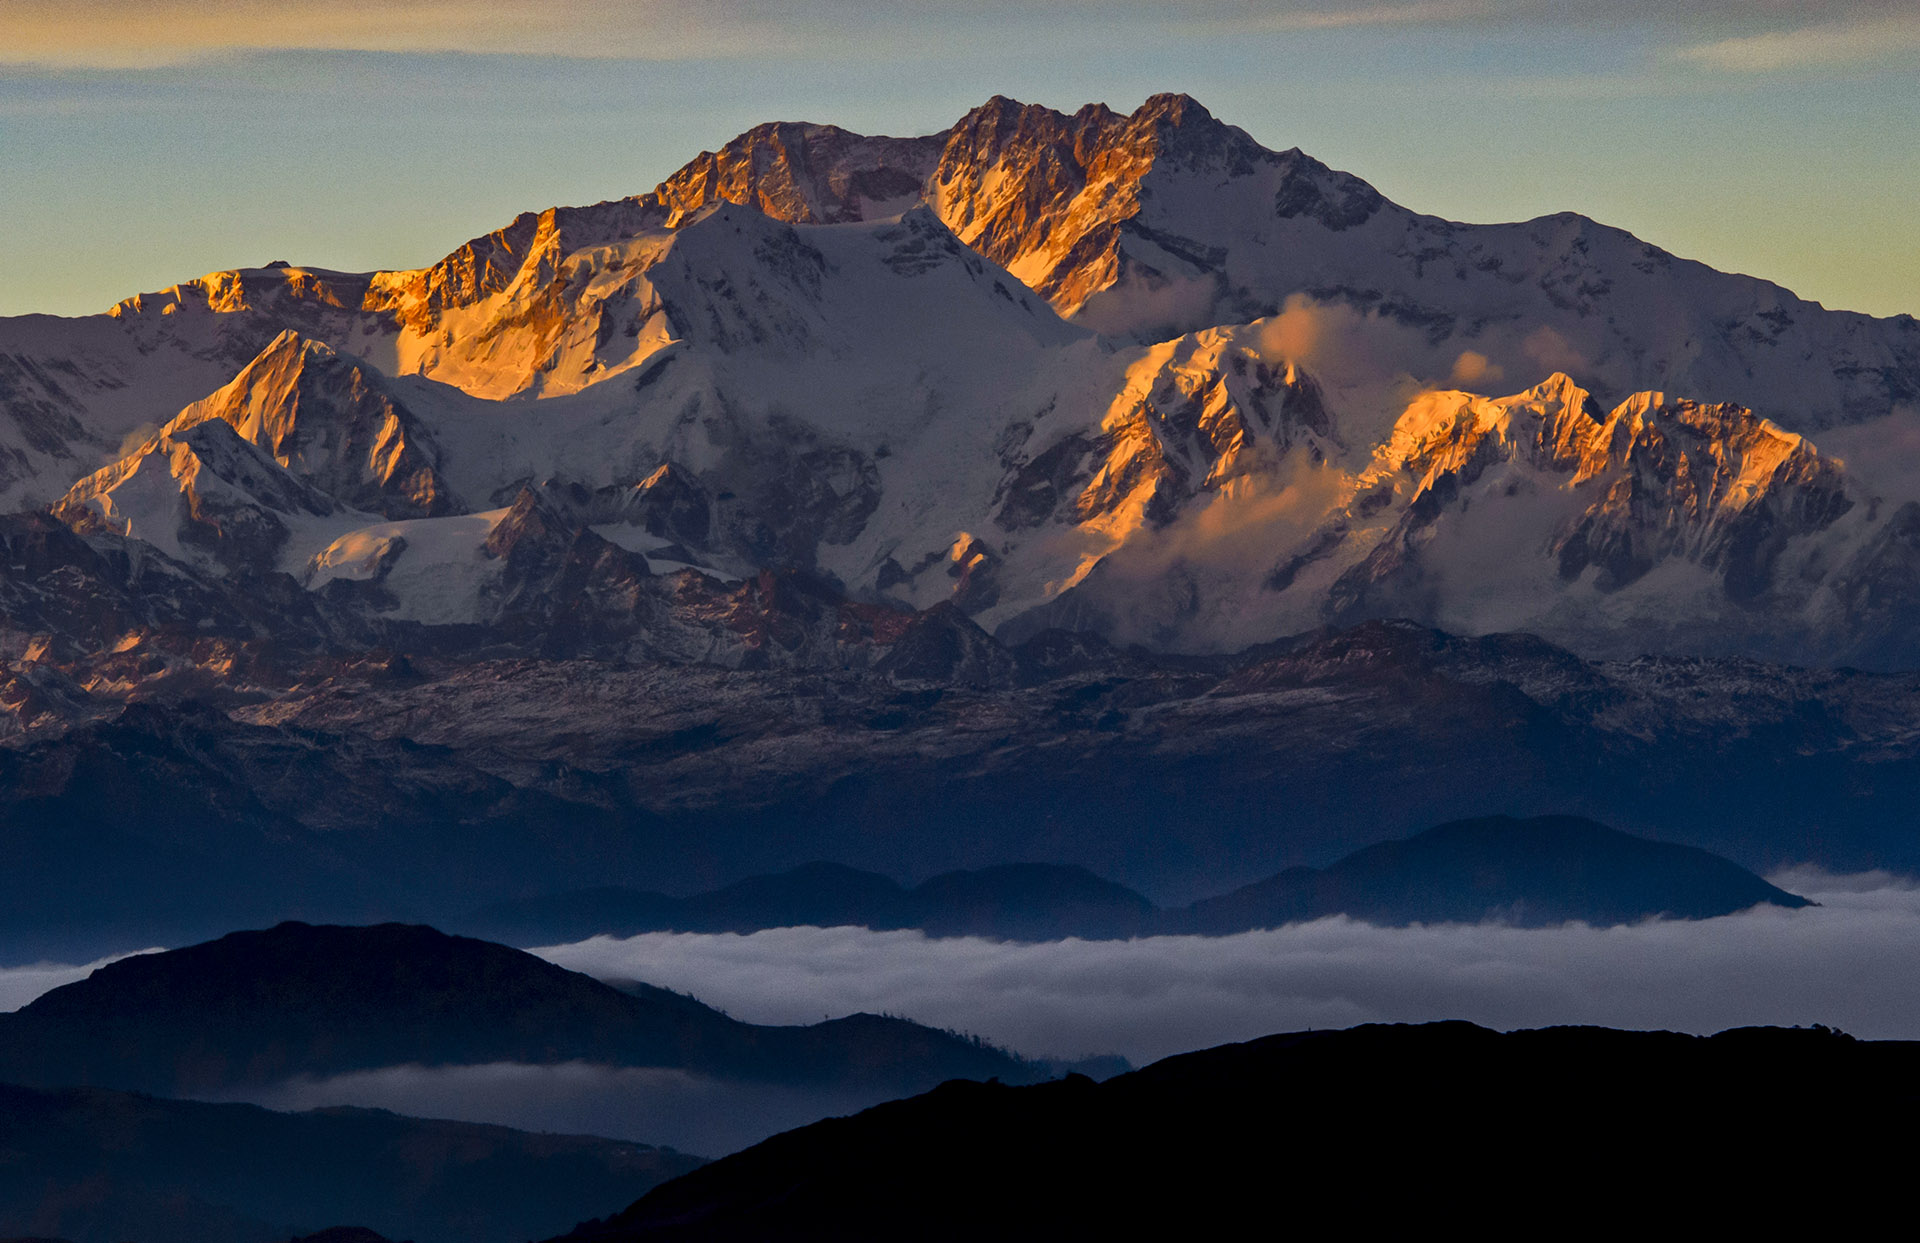 Located in the eastern Himalayas, Kanchenjunga is the third largest mountain in the world. Photo: Dhritiman Mukherjee